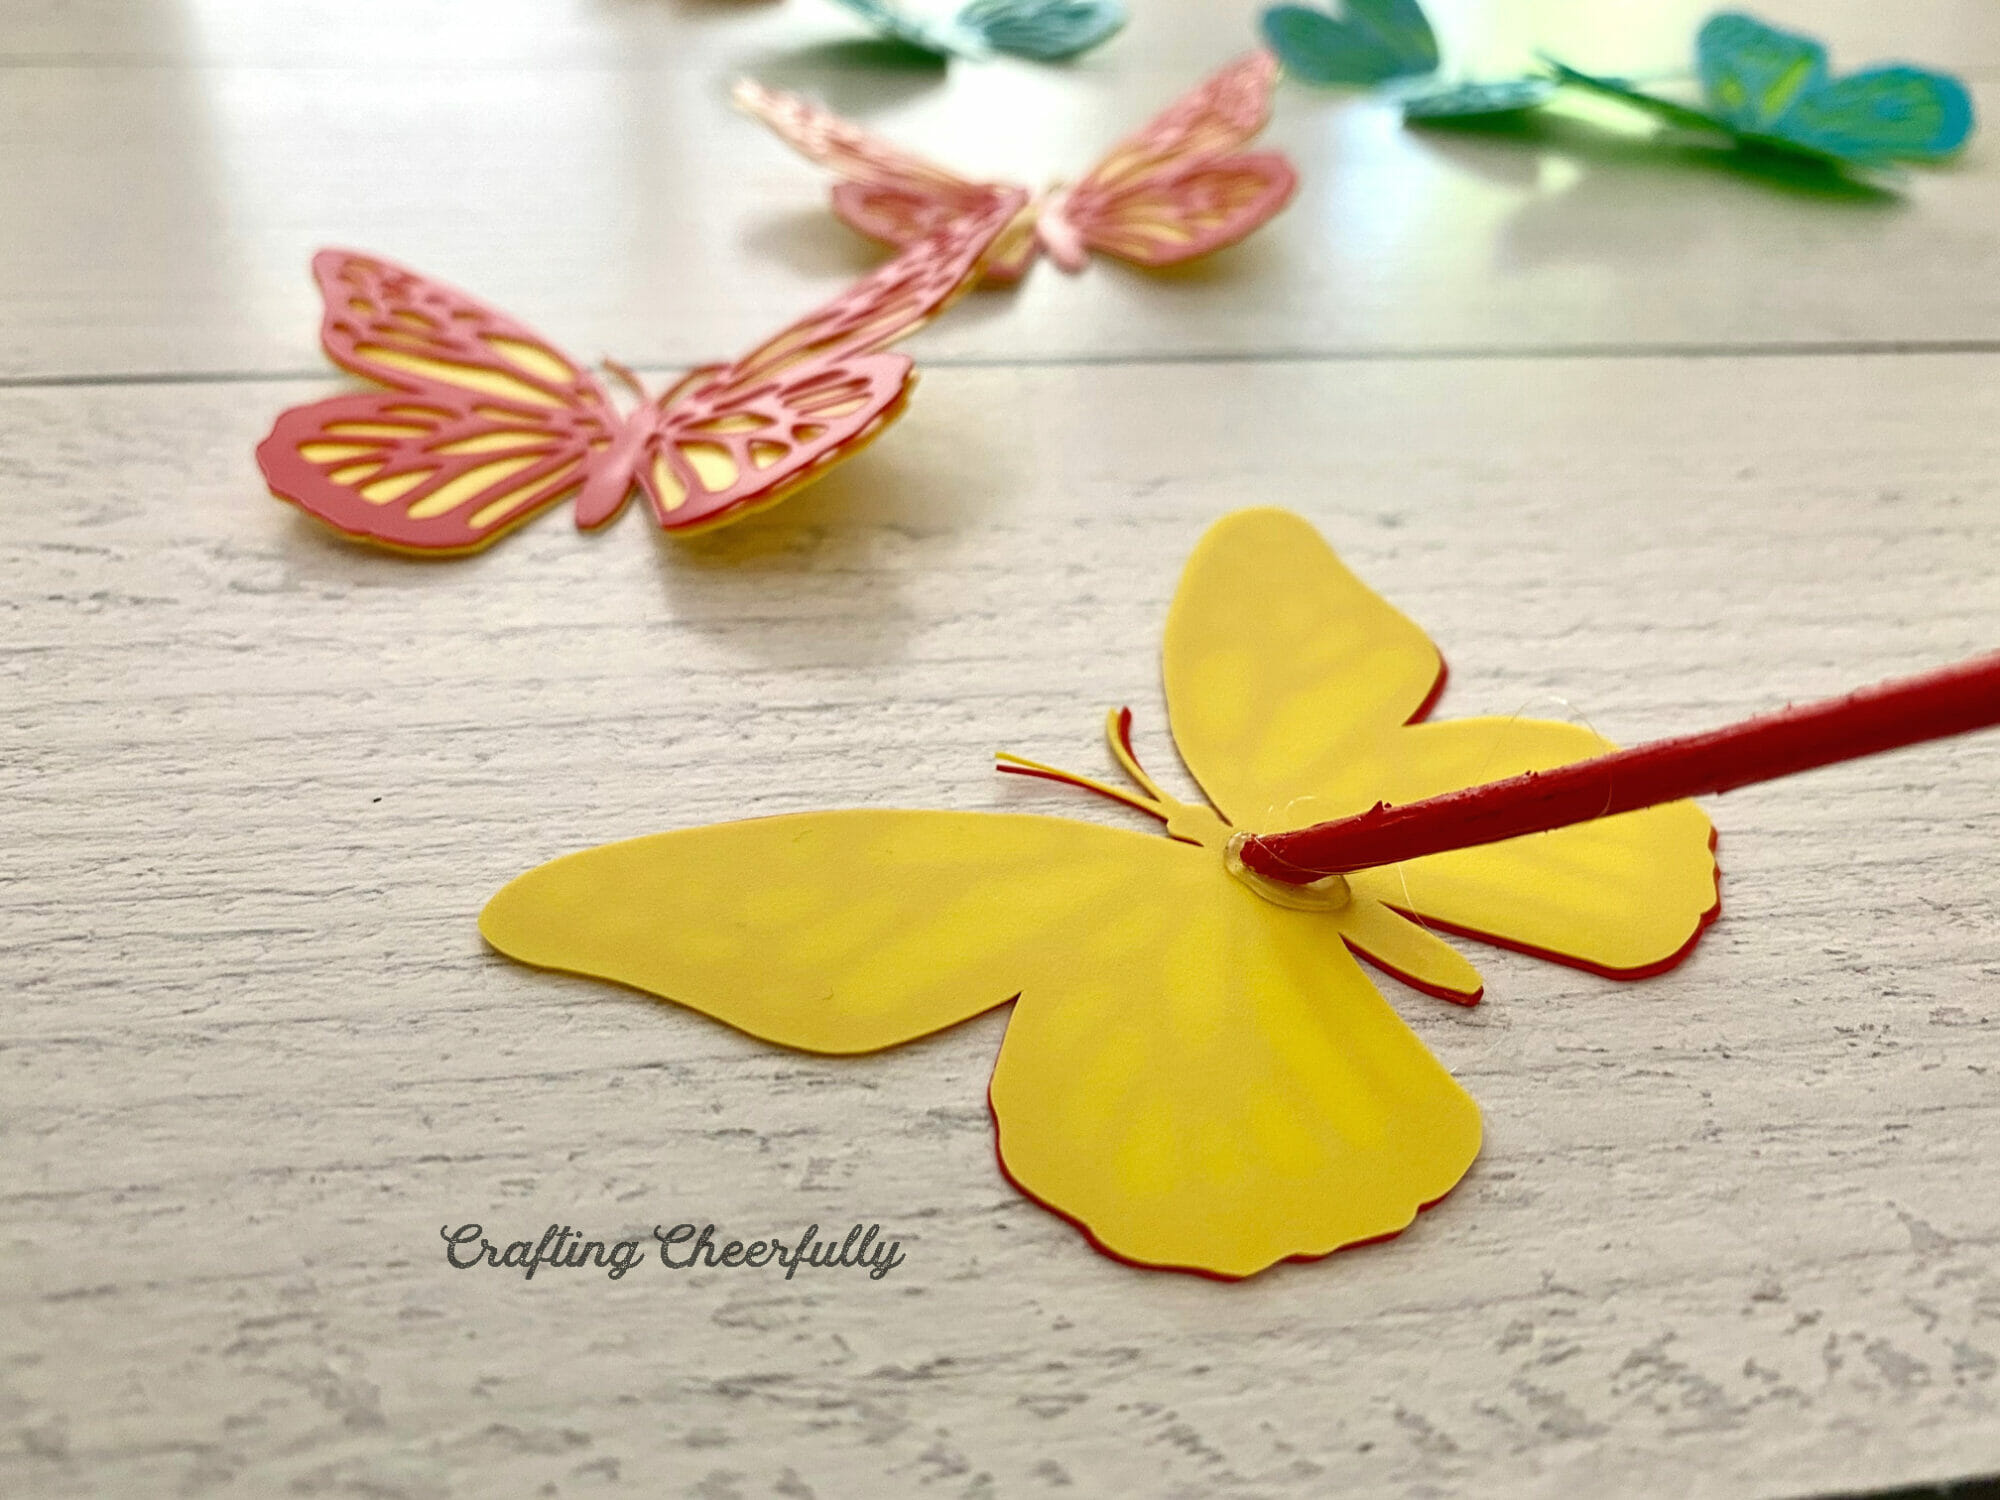 A red wooden dowel is glued to the back of a red and yellow butterfly.